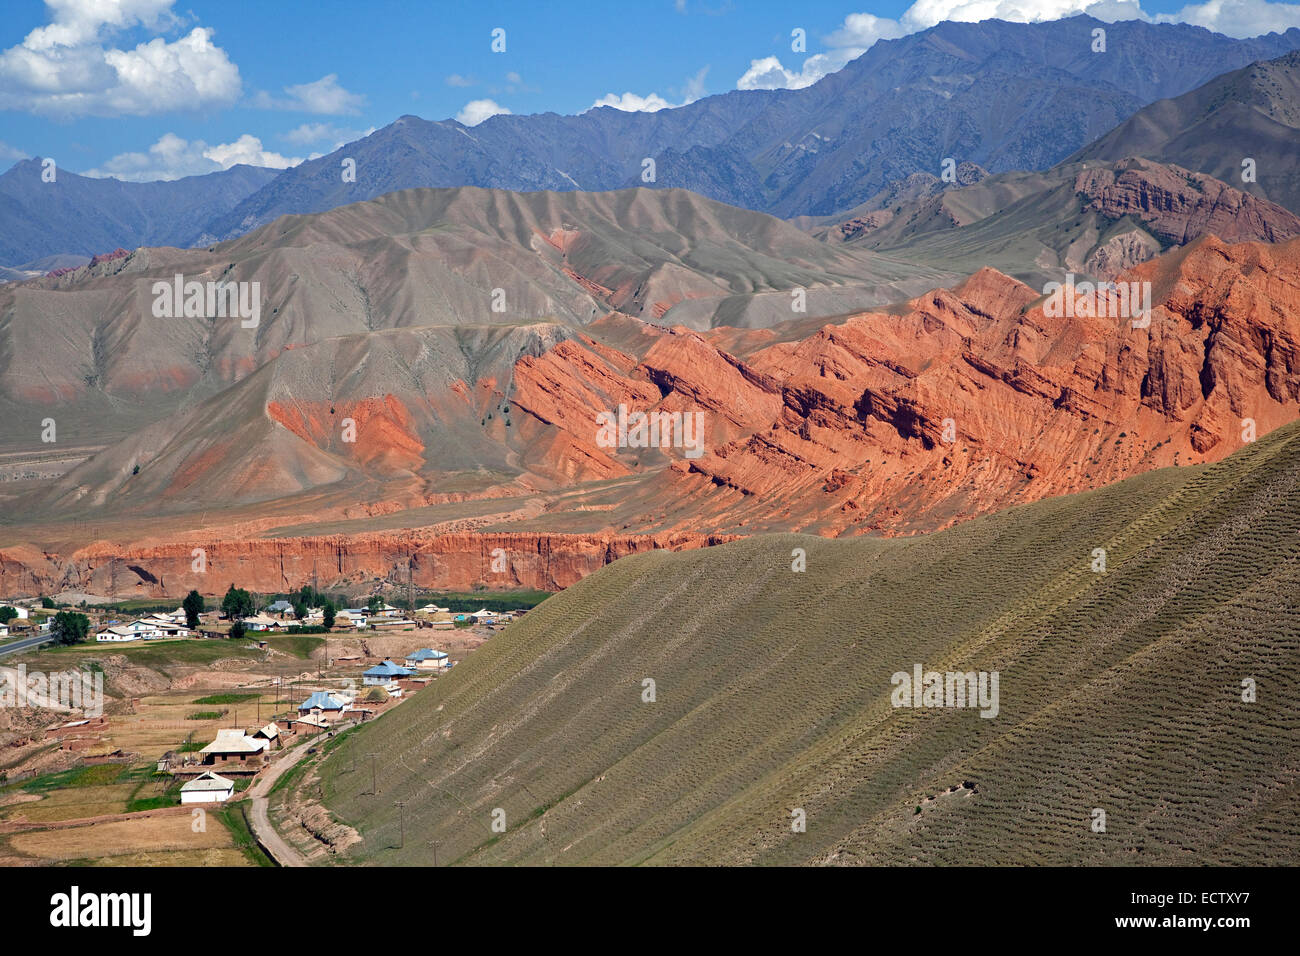 Village among colourful mountains, foothills of the Himalayas in the Osh Province, Kyrgyzstan - Stock Image